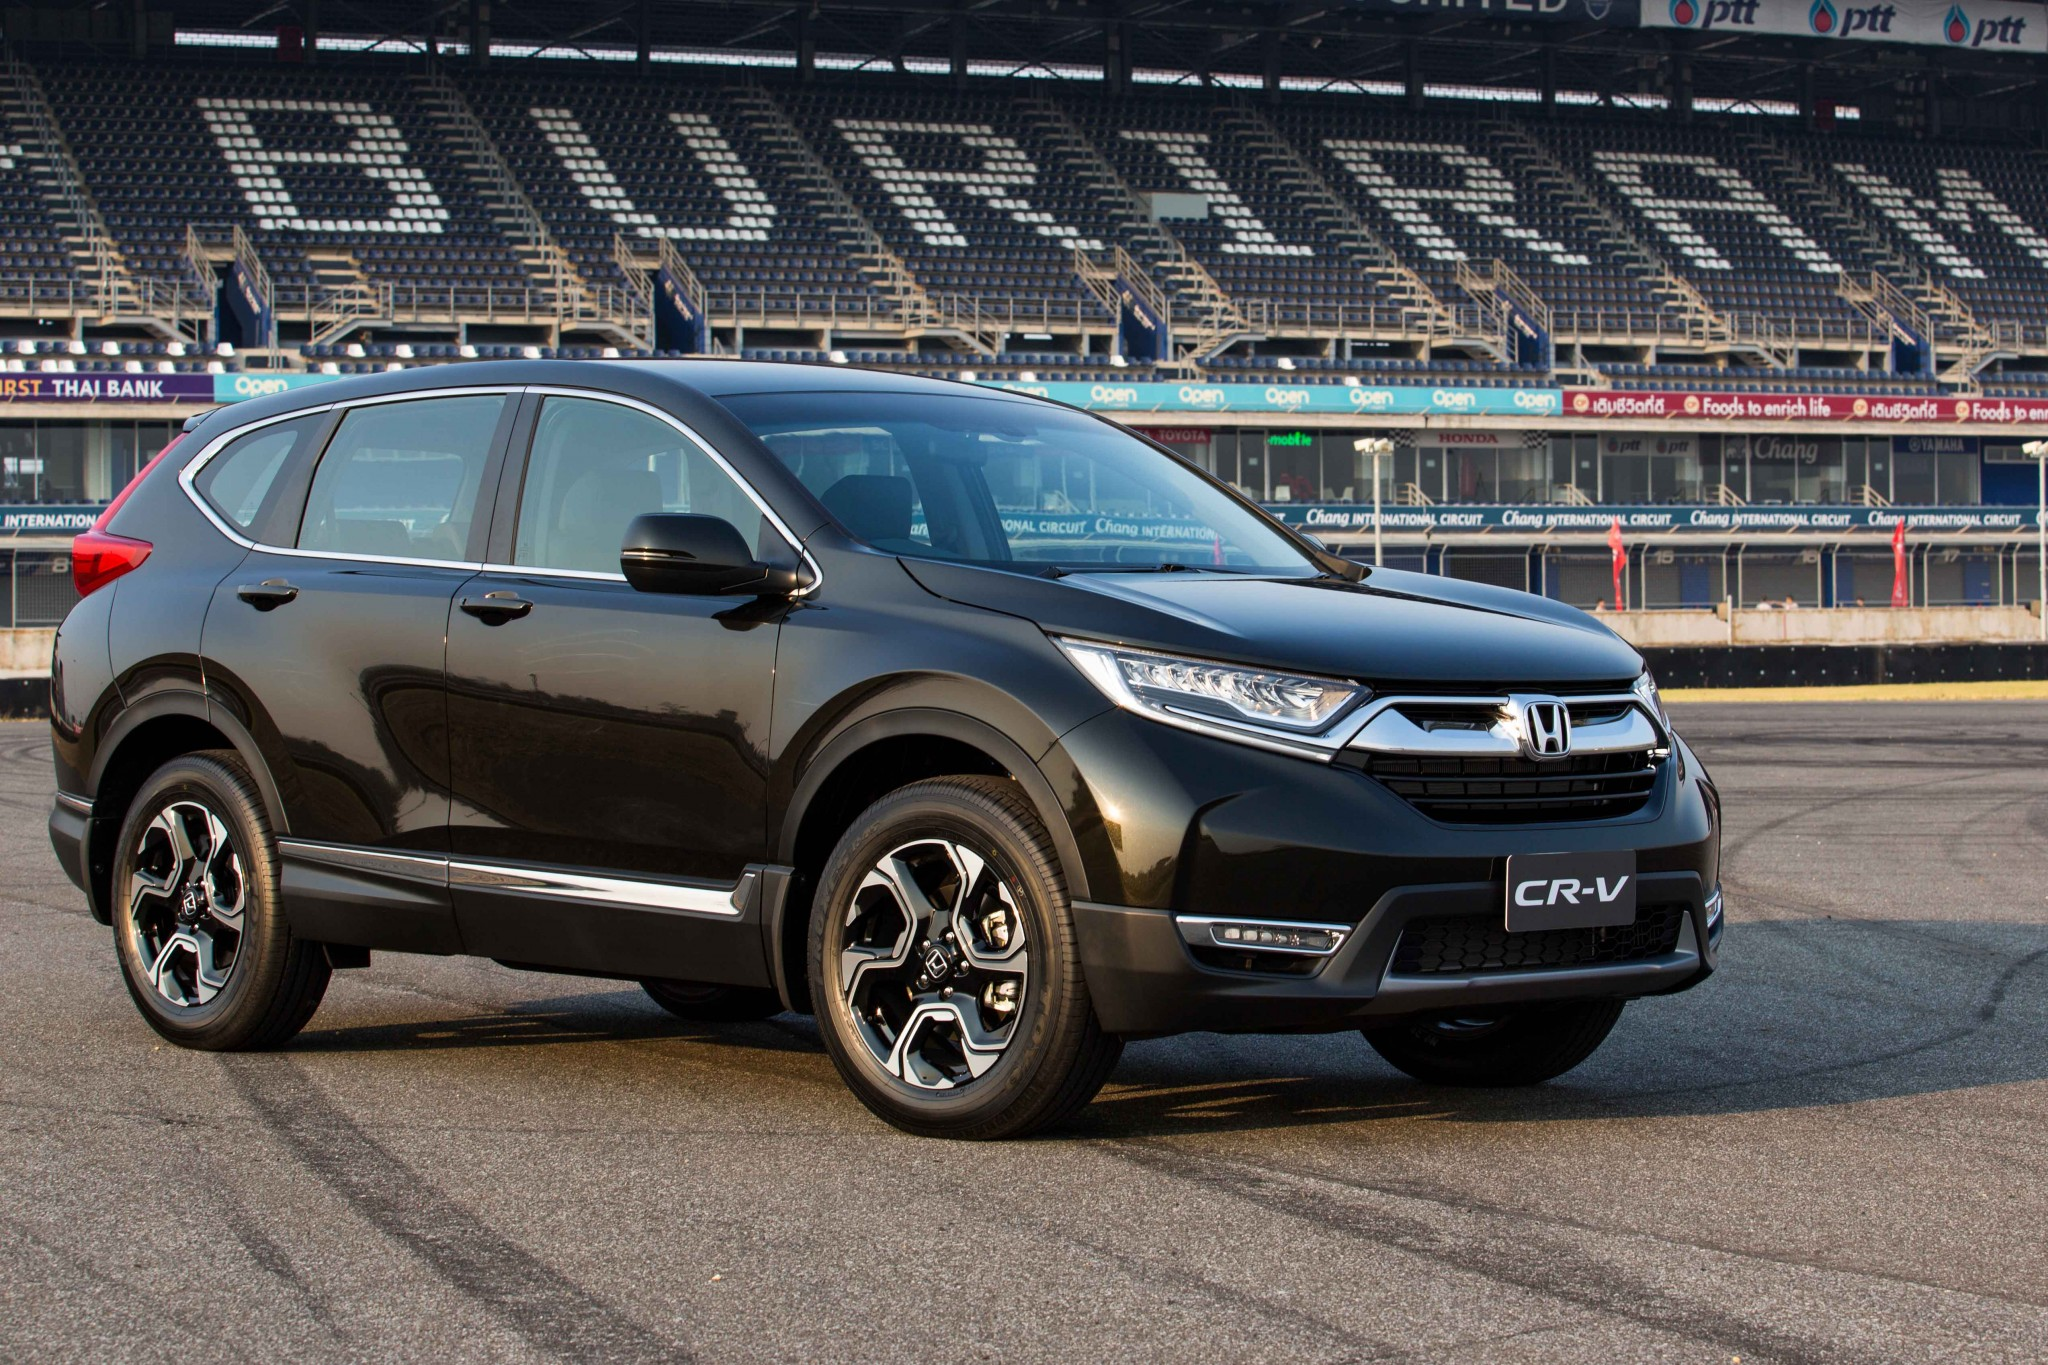 photos and first impressions of the diesel powered honda cr v w 12 photos philippine car. Black Bedroom Furniture Sets. Home Design Ideas